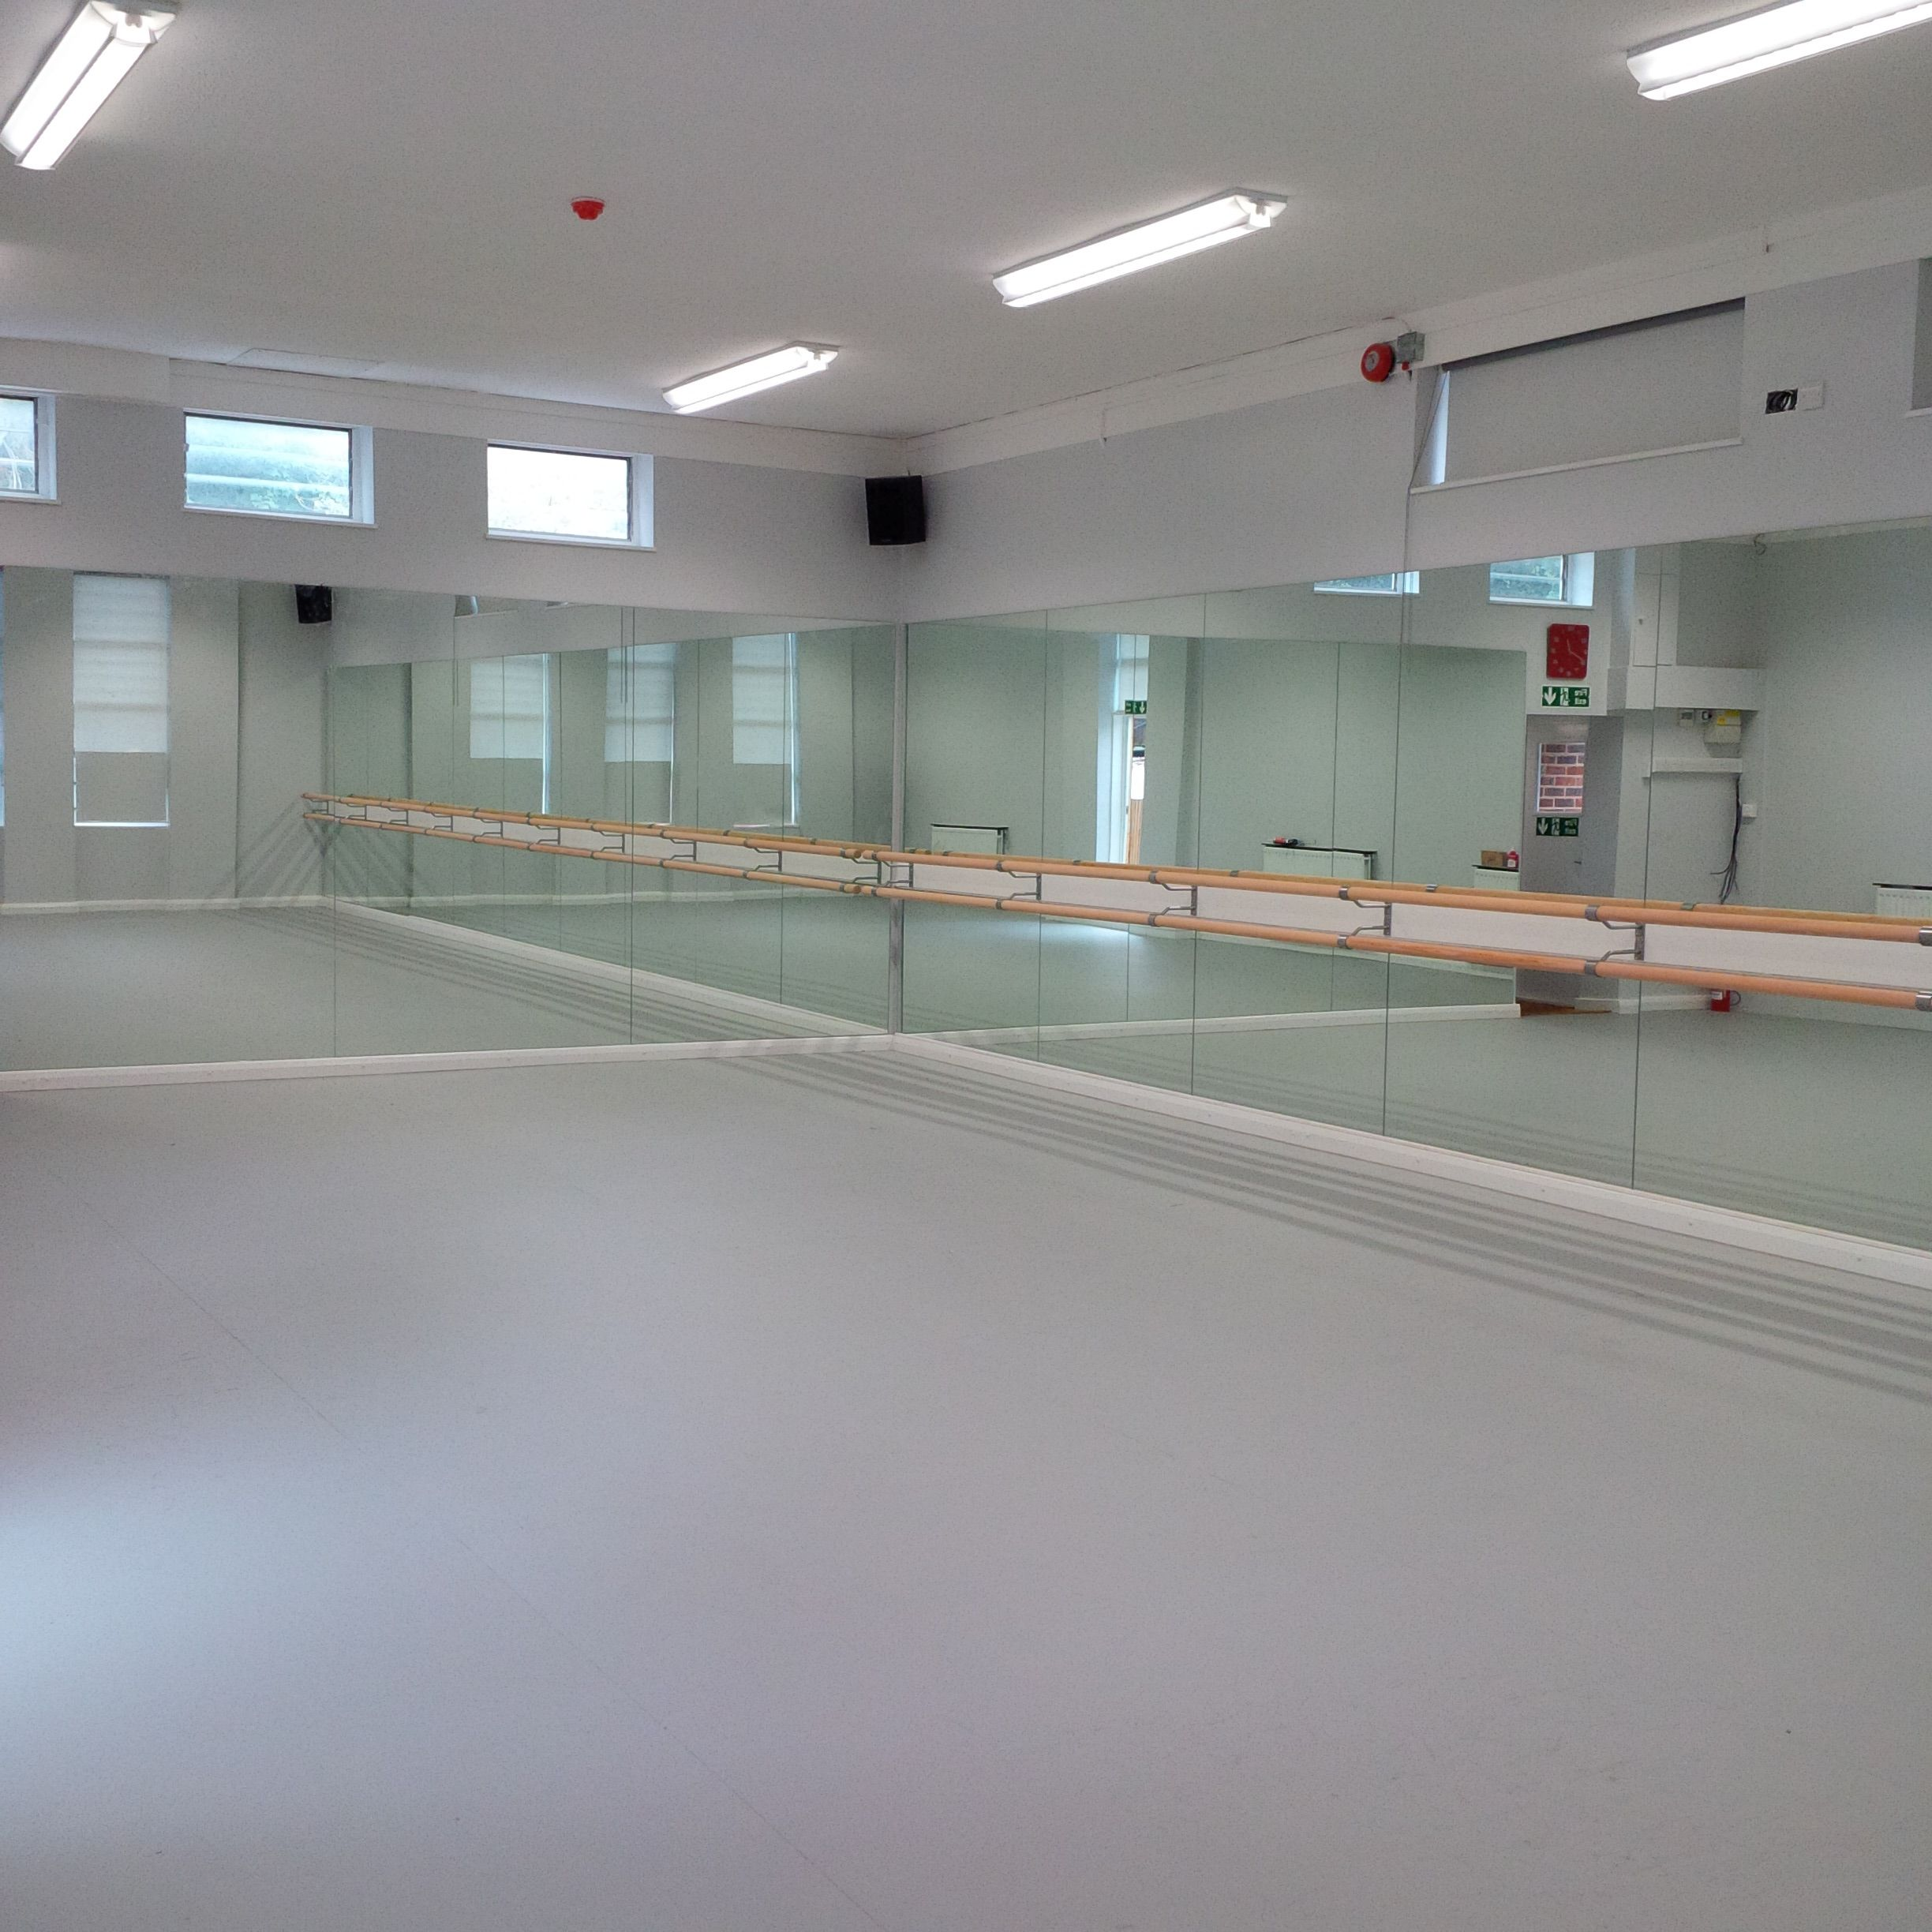 Captivating Installation Of Our ActiSprung Dance Floor, Optimax Studio Mirrors And  Endura Ballet Barres At Box